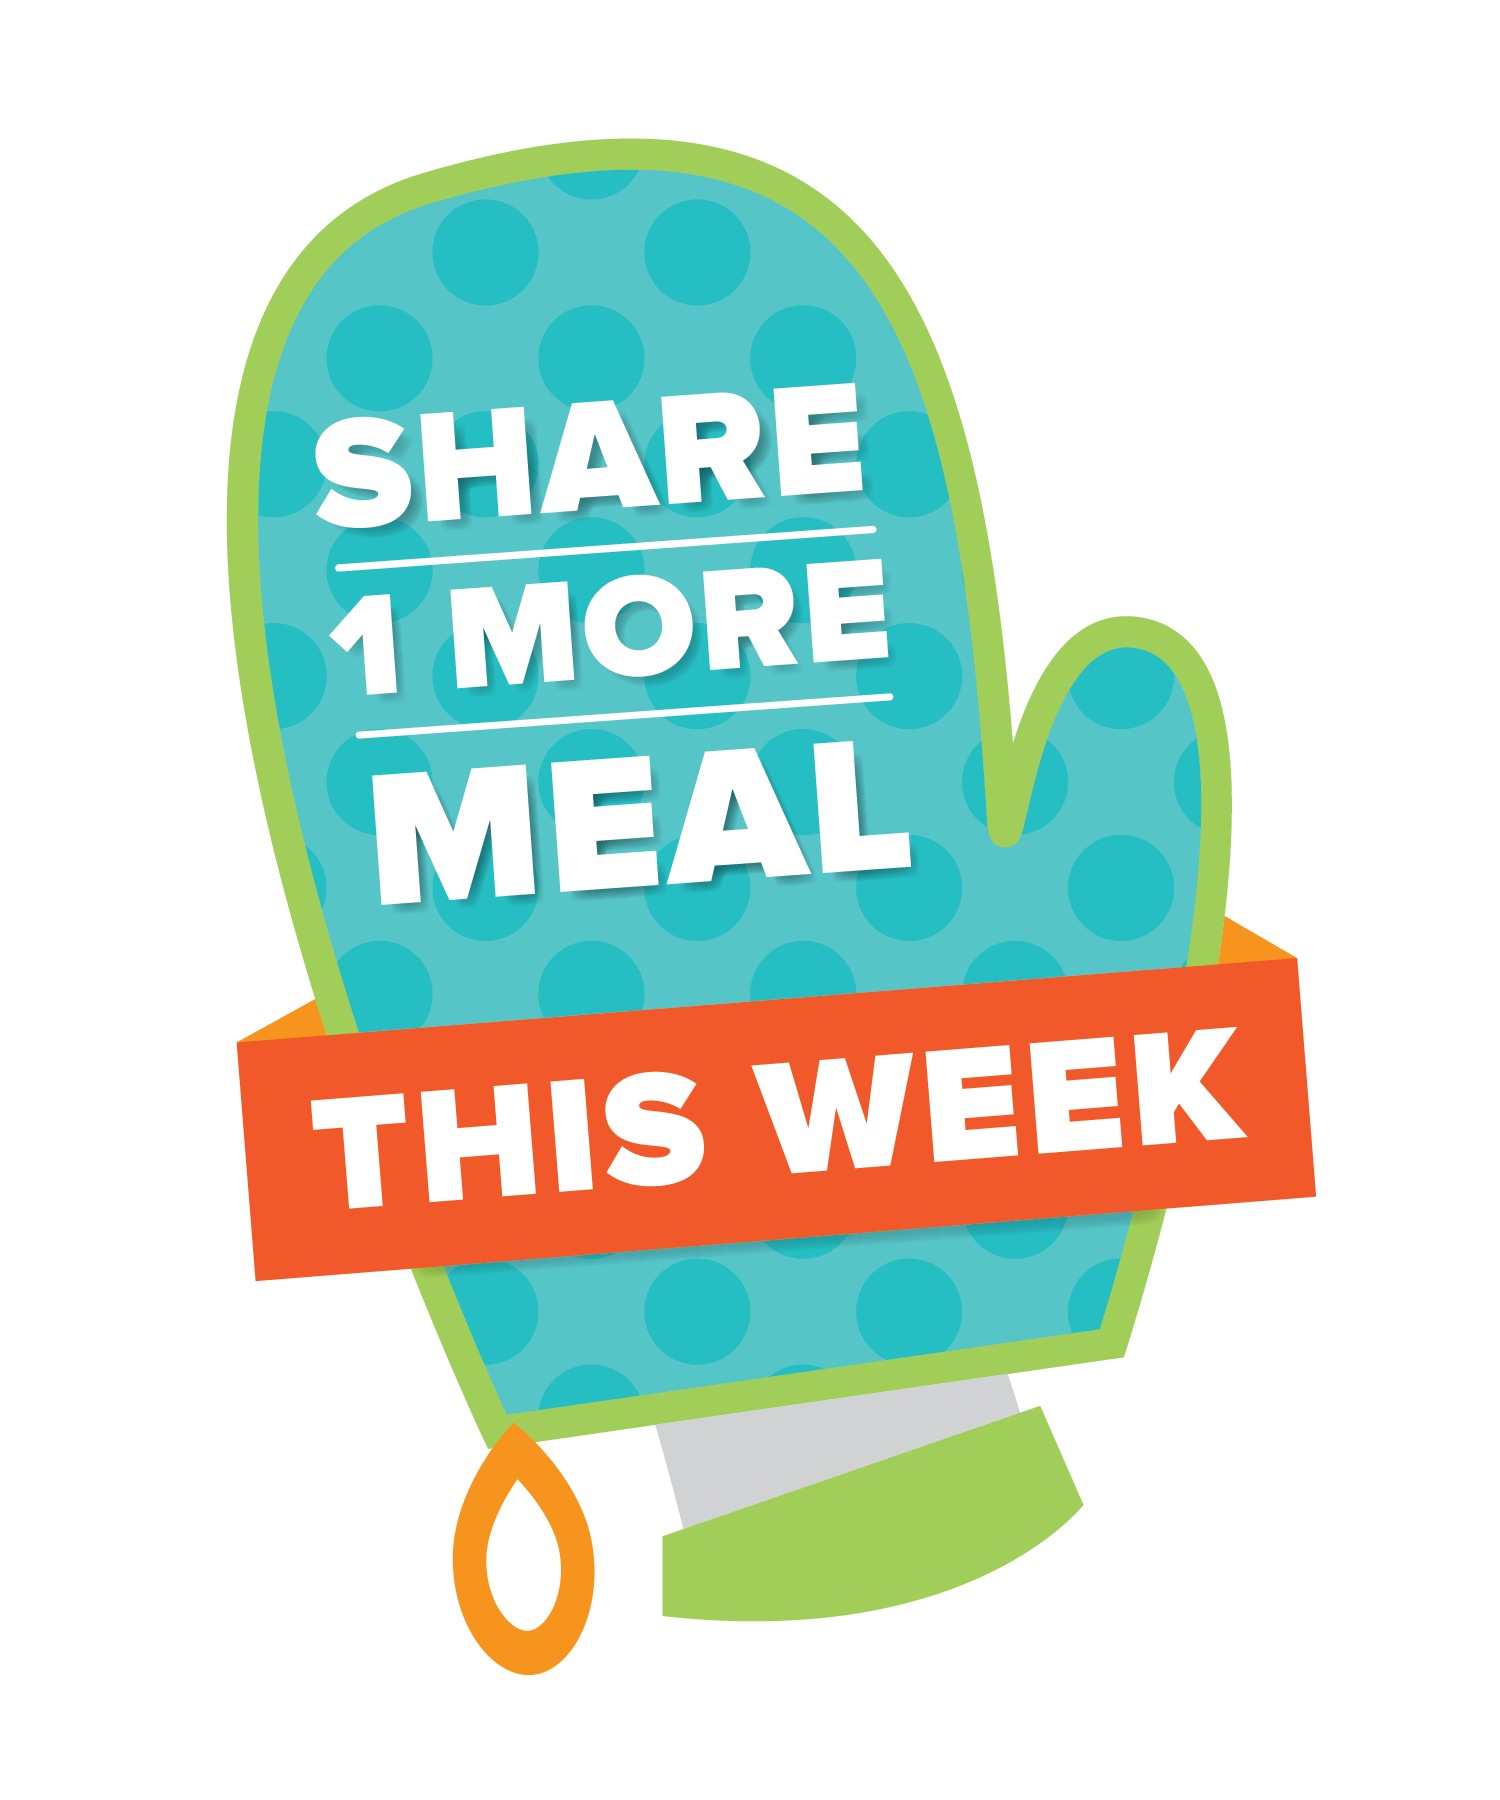 Share one more meal this week